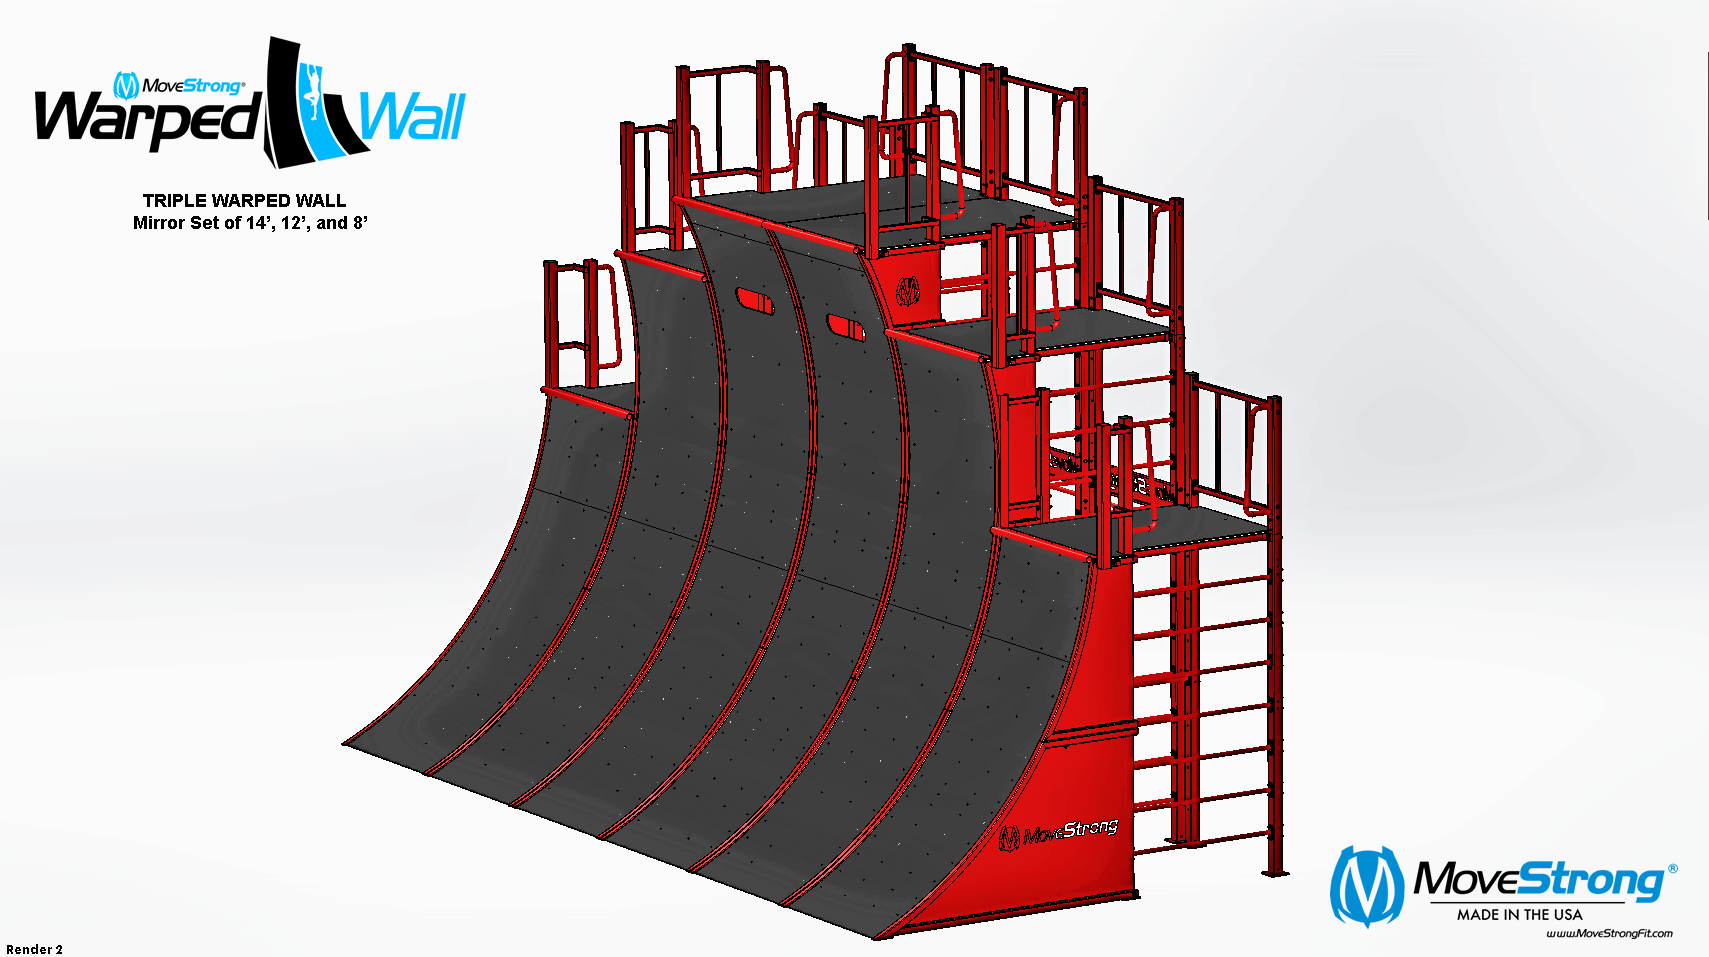 Six Warped Walls Modular Design